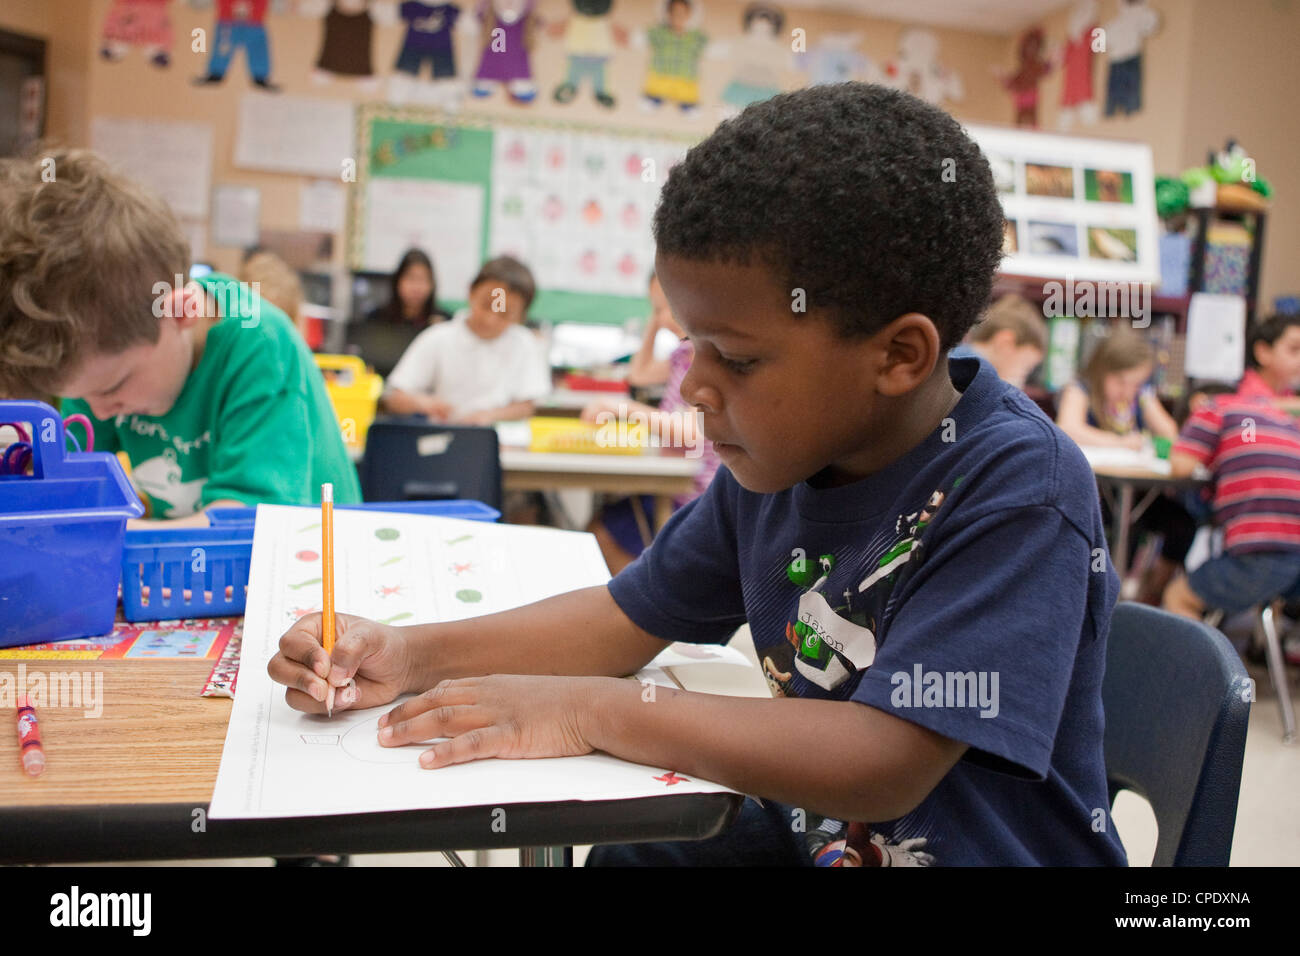 African American Male Kindergarten Student Works At His